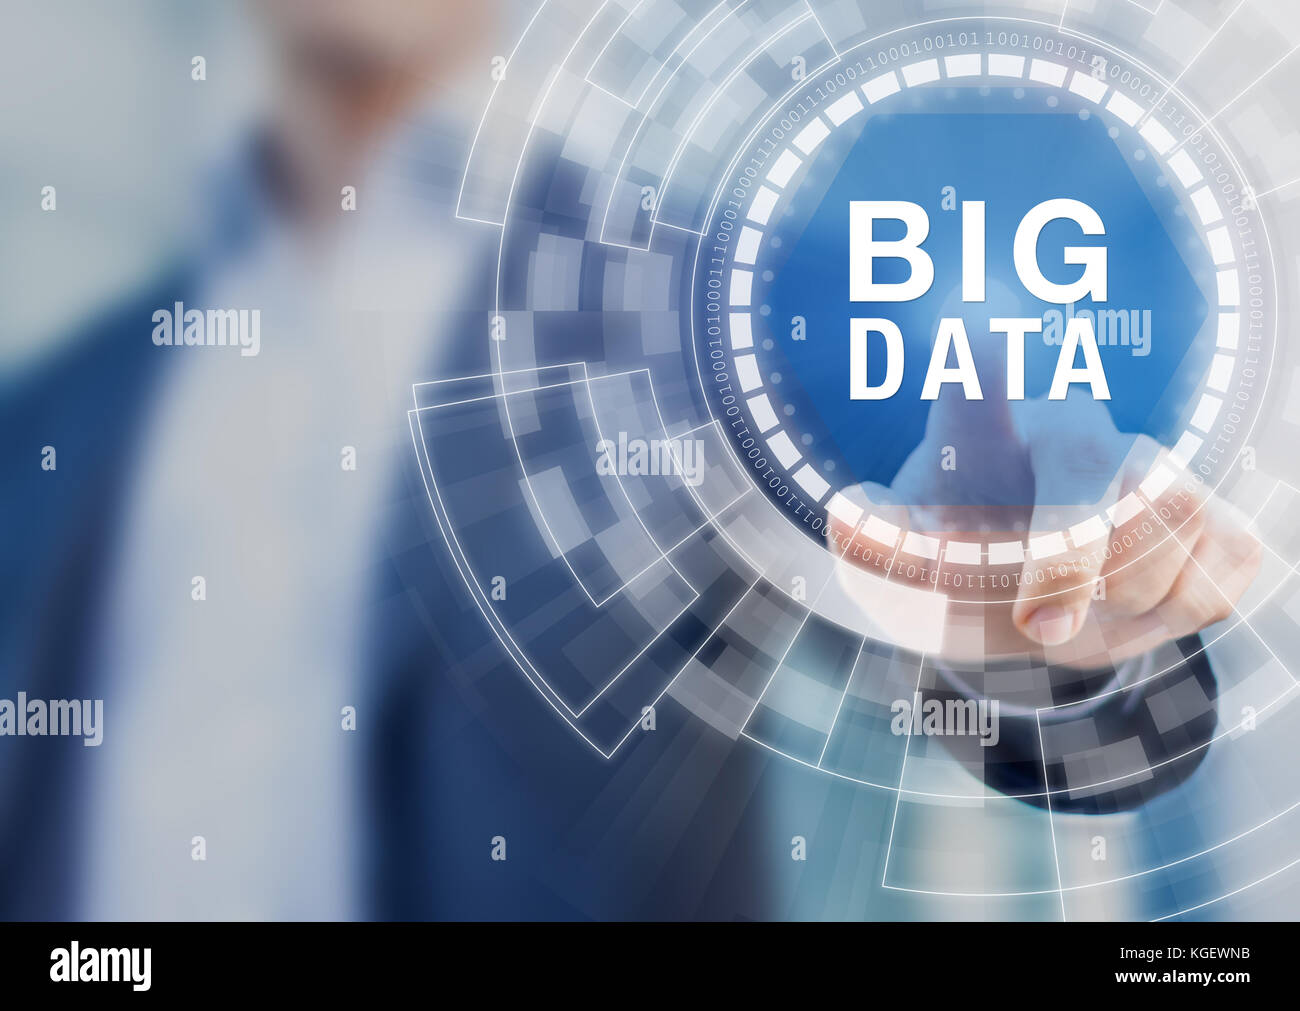 Big data technology concept with person touching complex abstract interface representing warehouse storage, cloud - Stock Image